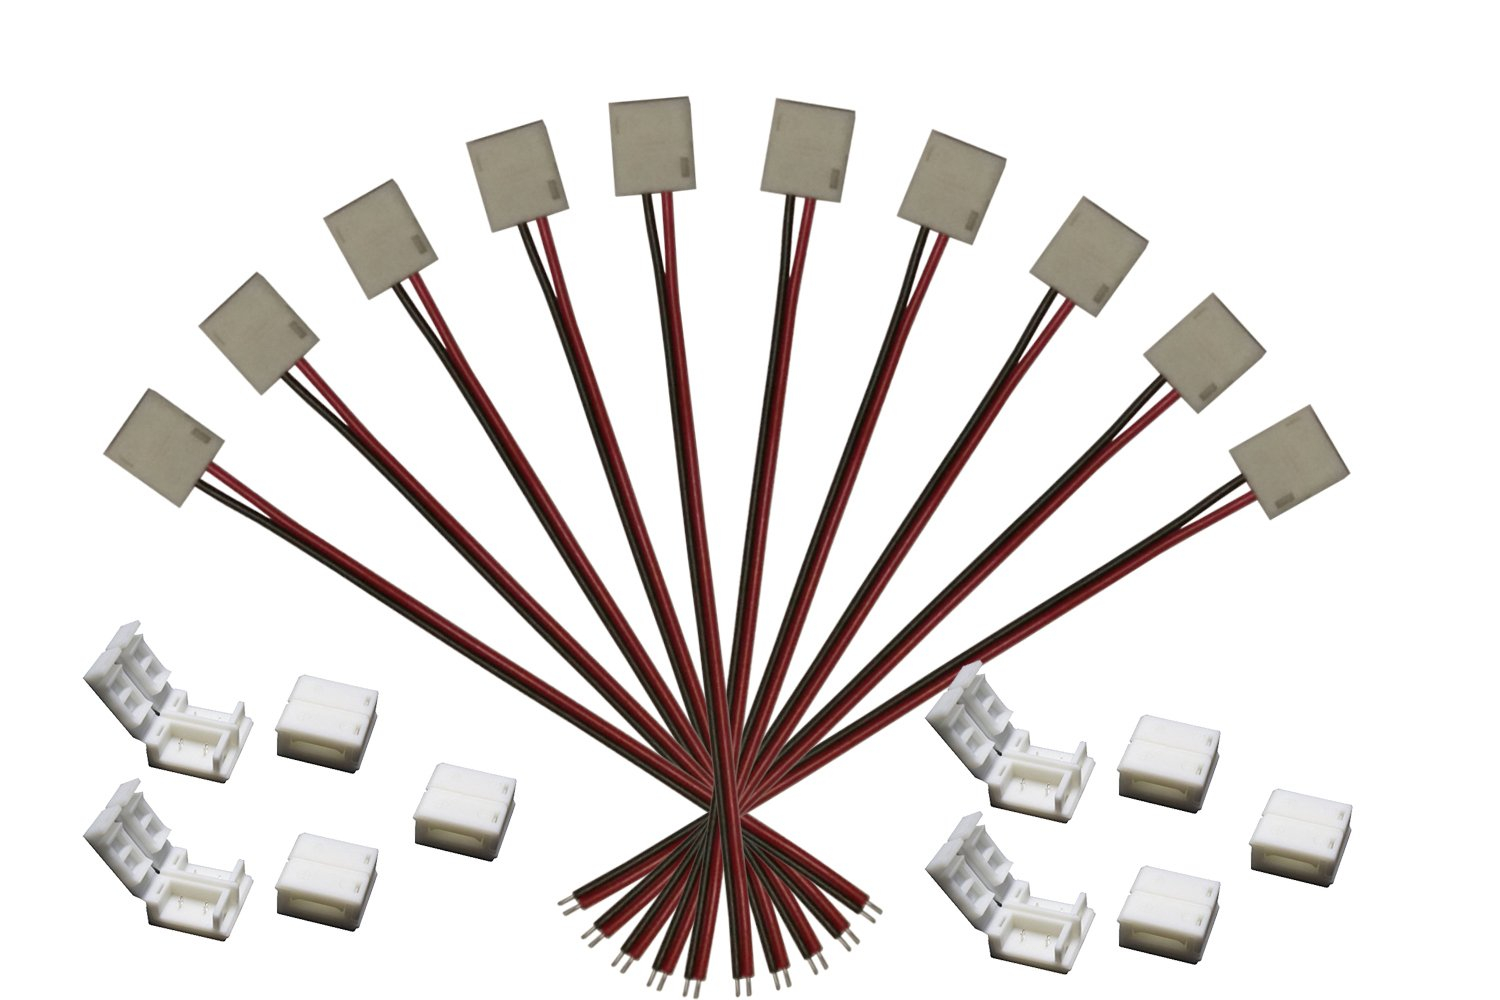 Alightings 2 Pin 8mm LED Strip Connector Kits for Outdoor Silicone Covered Strips Light Double-sided PCB 3528 2835 3014 Single Color Lights , Contains 10pcs Gapless, 10pcs Jumper Wire Connectors